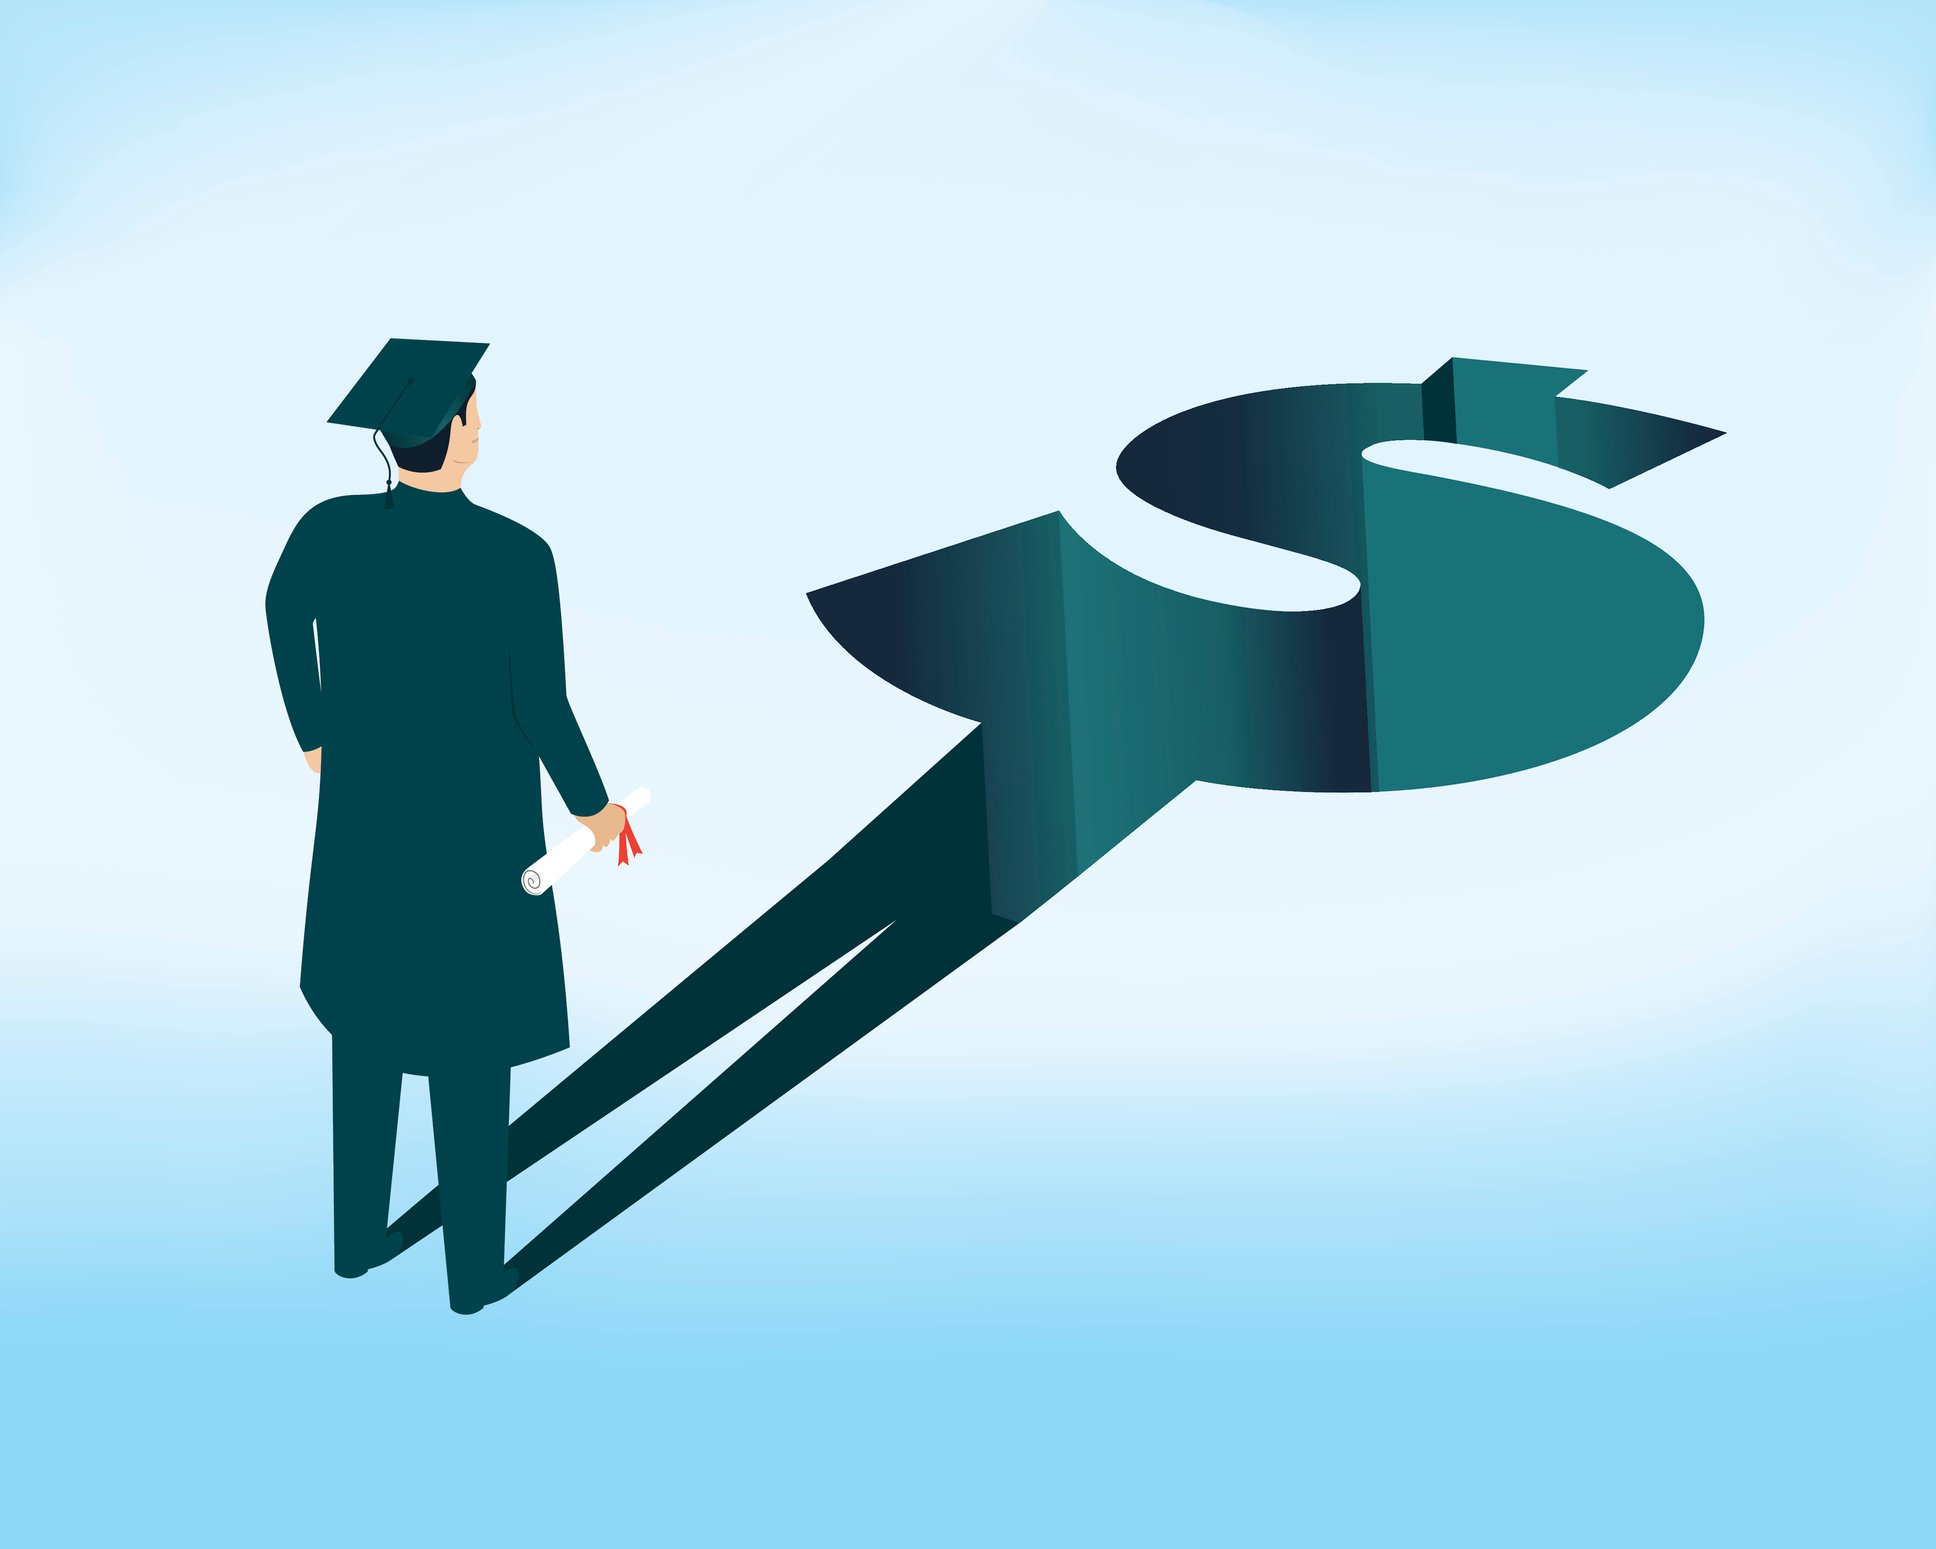 Annual Cost Of Attendance At 3 T14 Law Schools Now Exceeds $100K